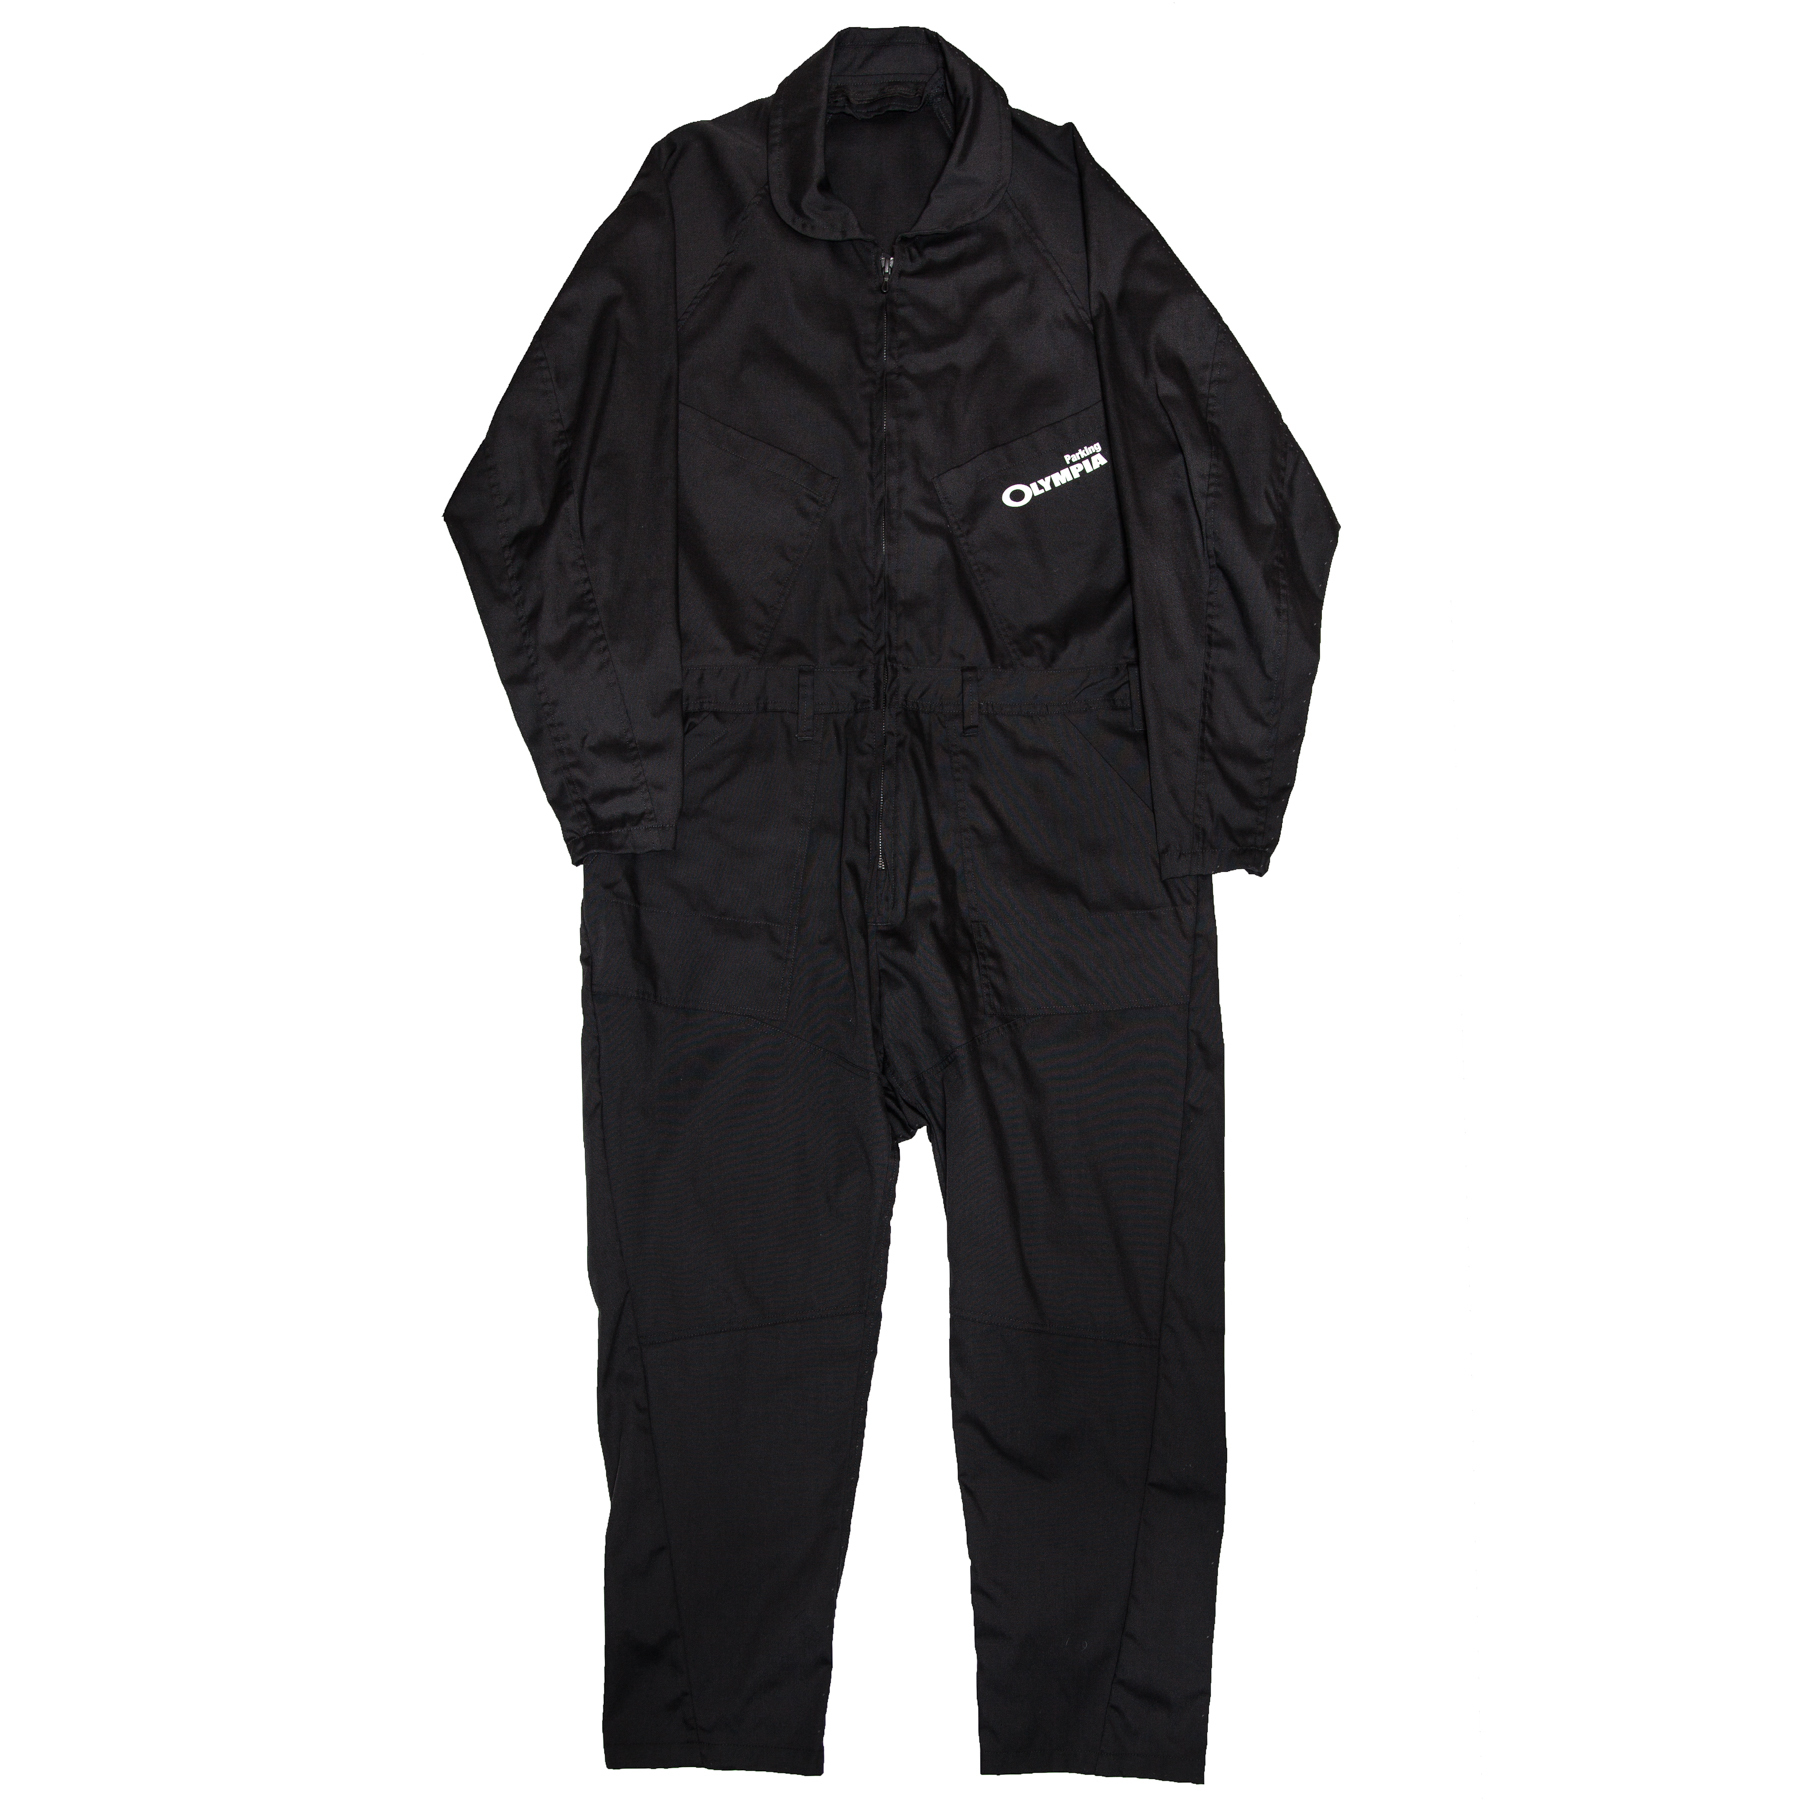 007JSM3-BLACK / PARKING JUMPSUIT